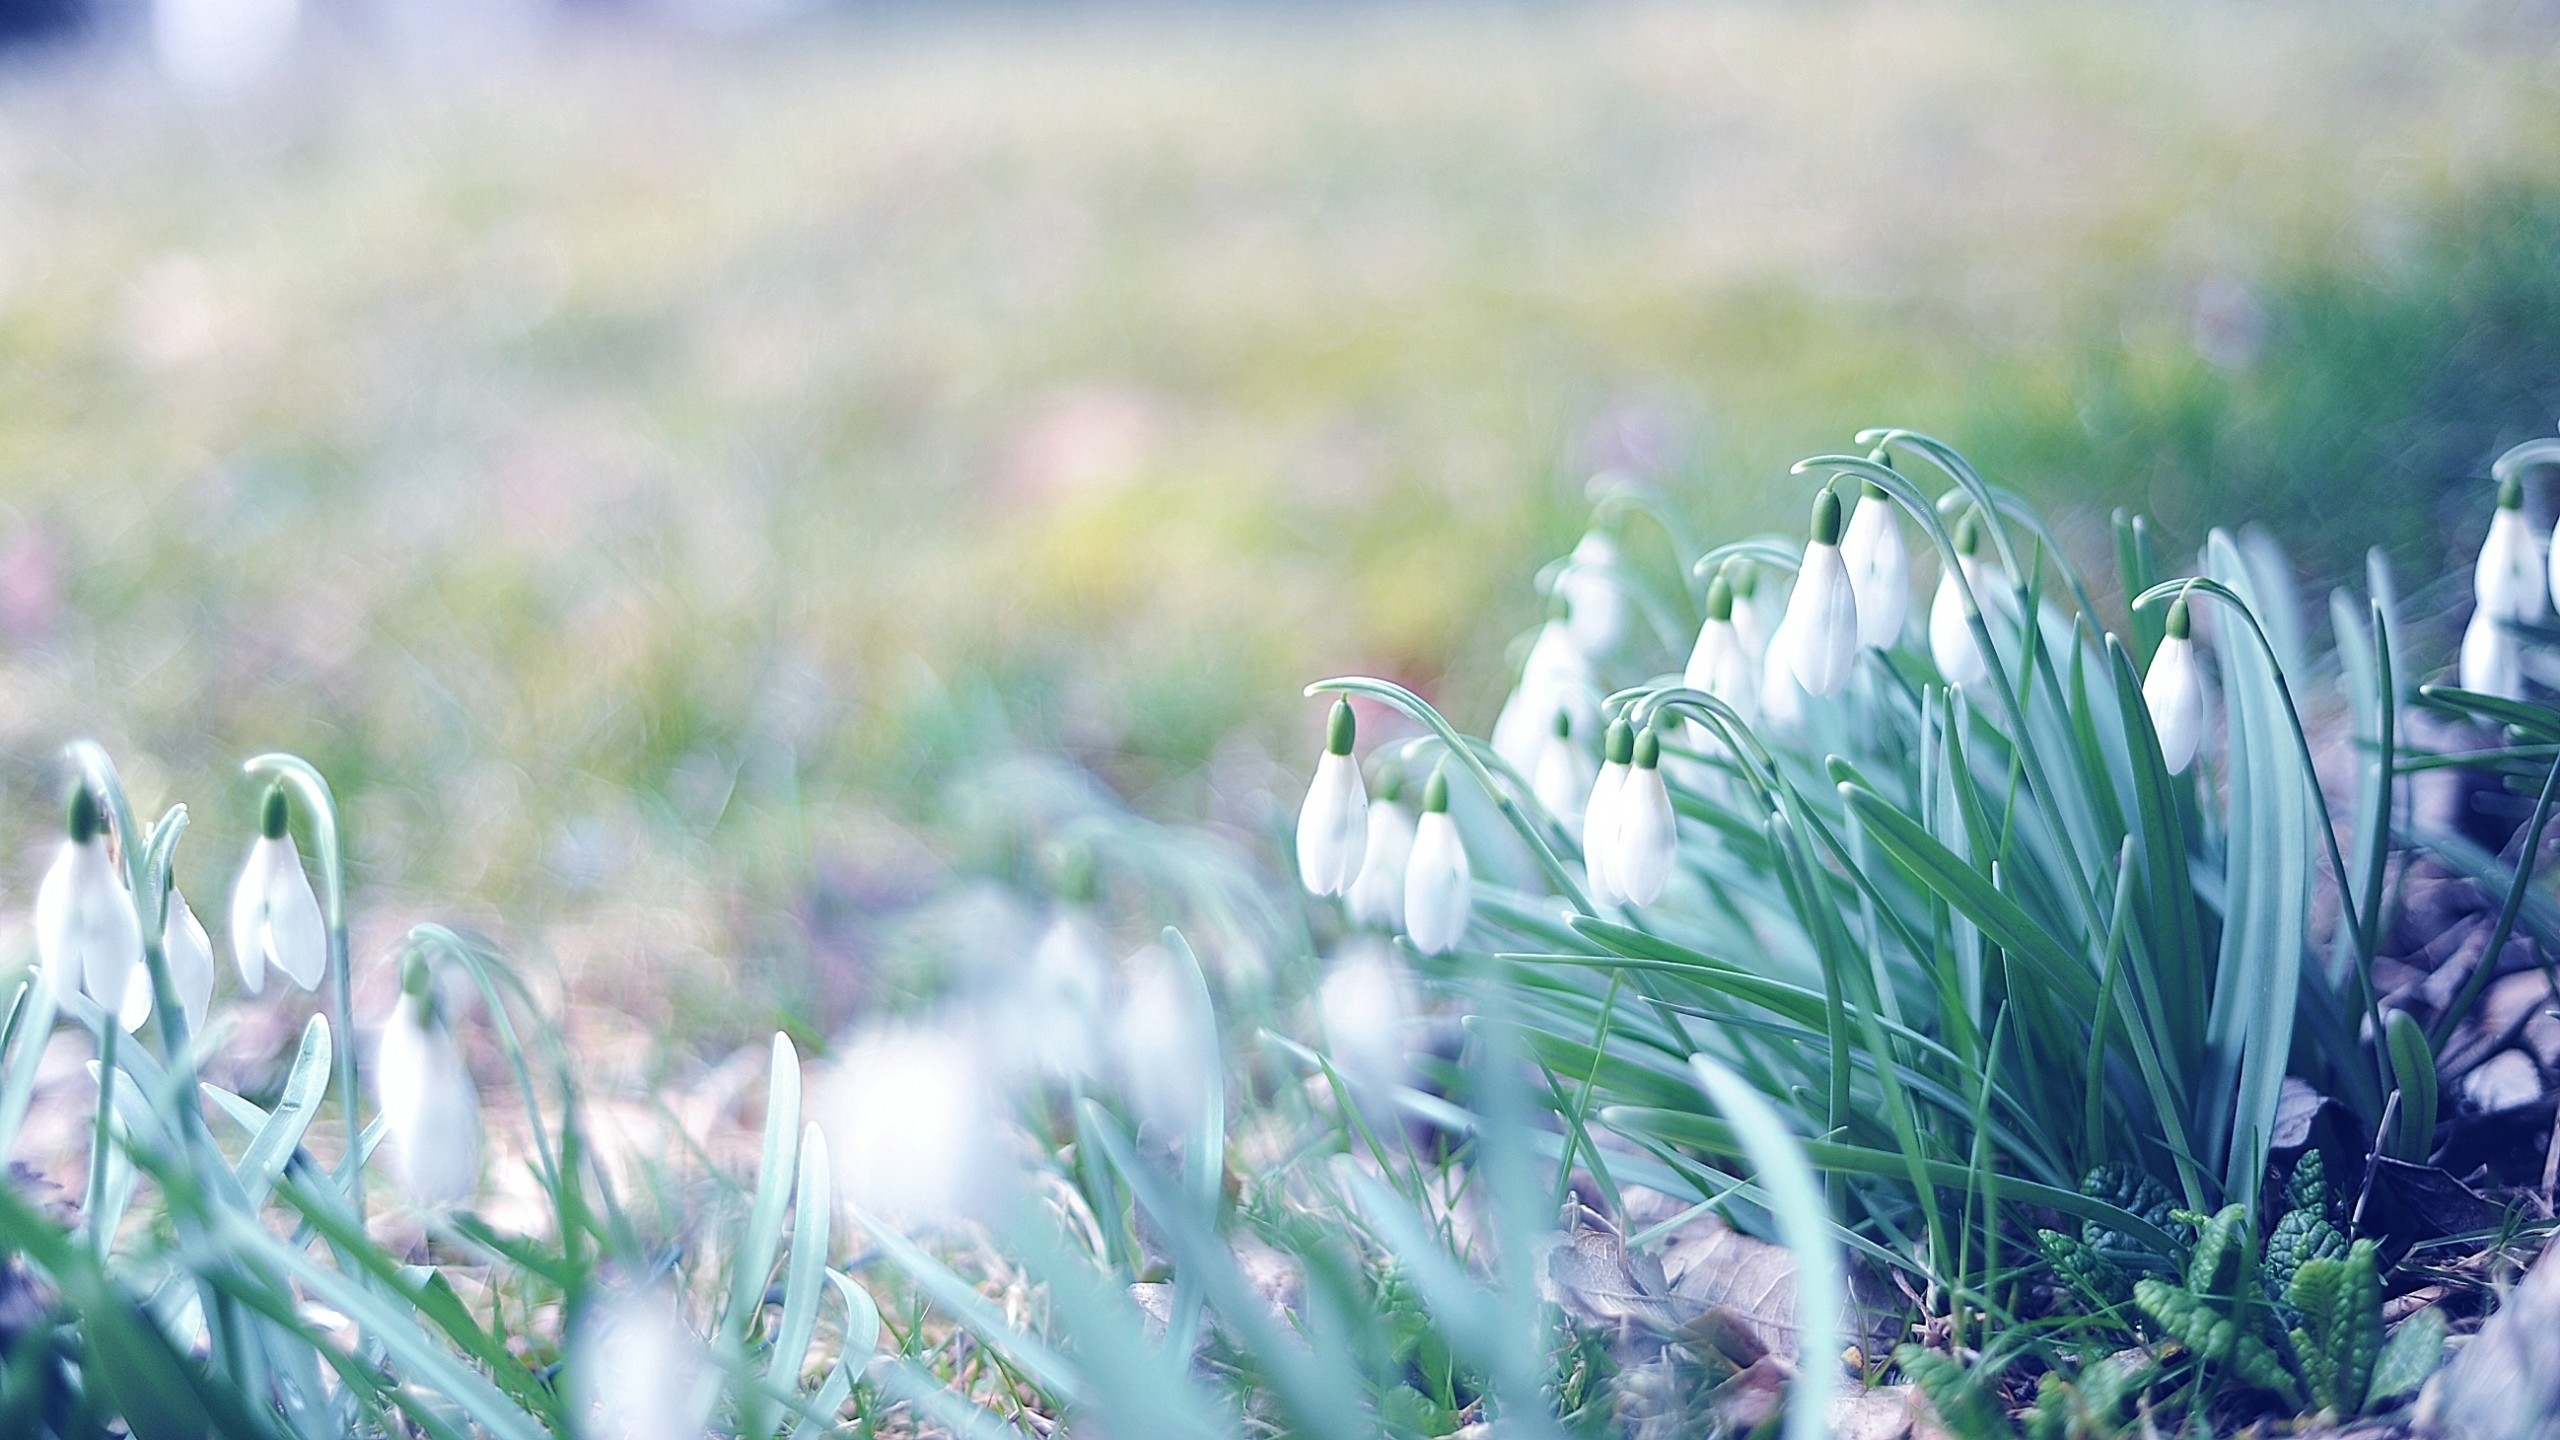 2560x1440 Preview wallpaper spring, snowdrops, grass, light, march